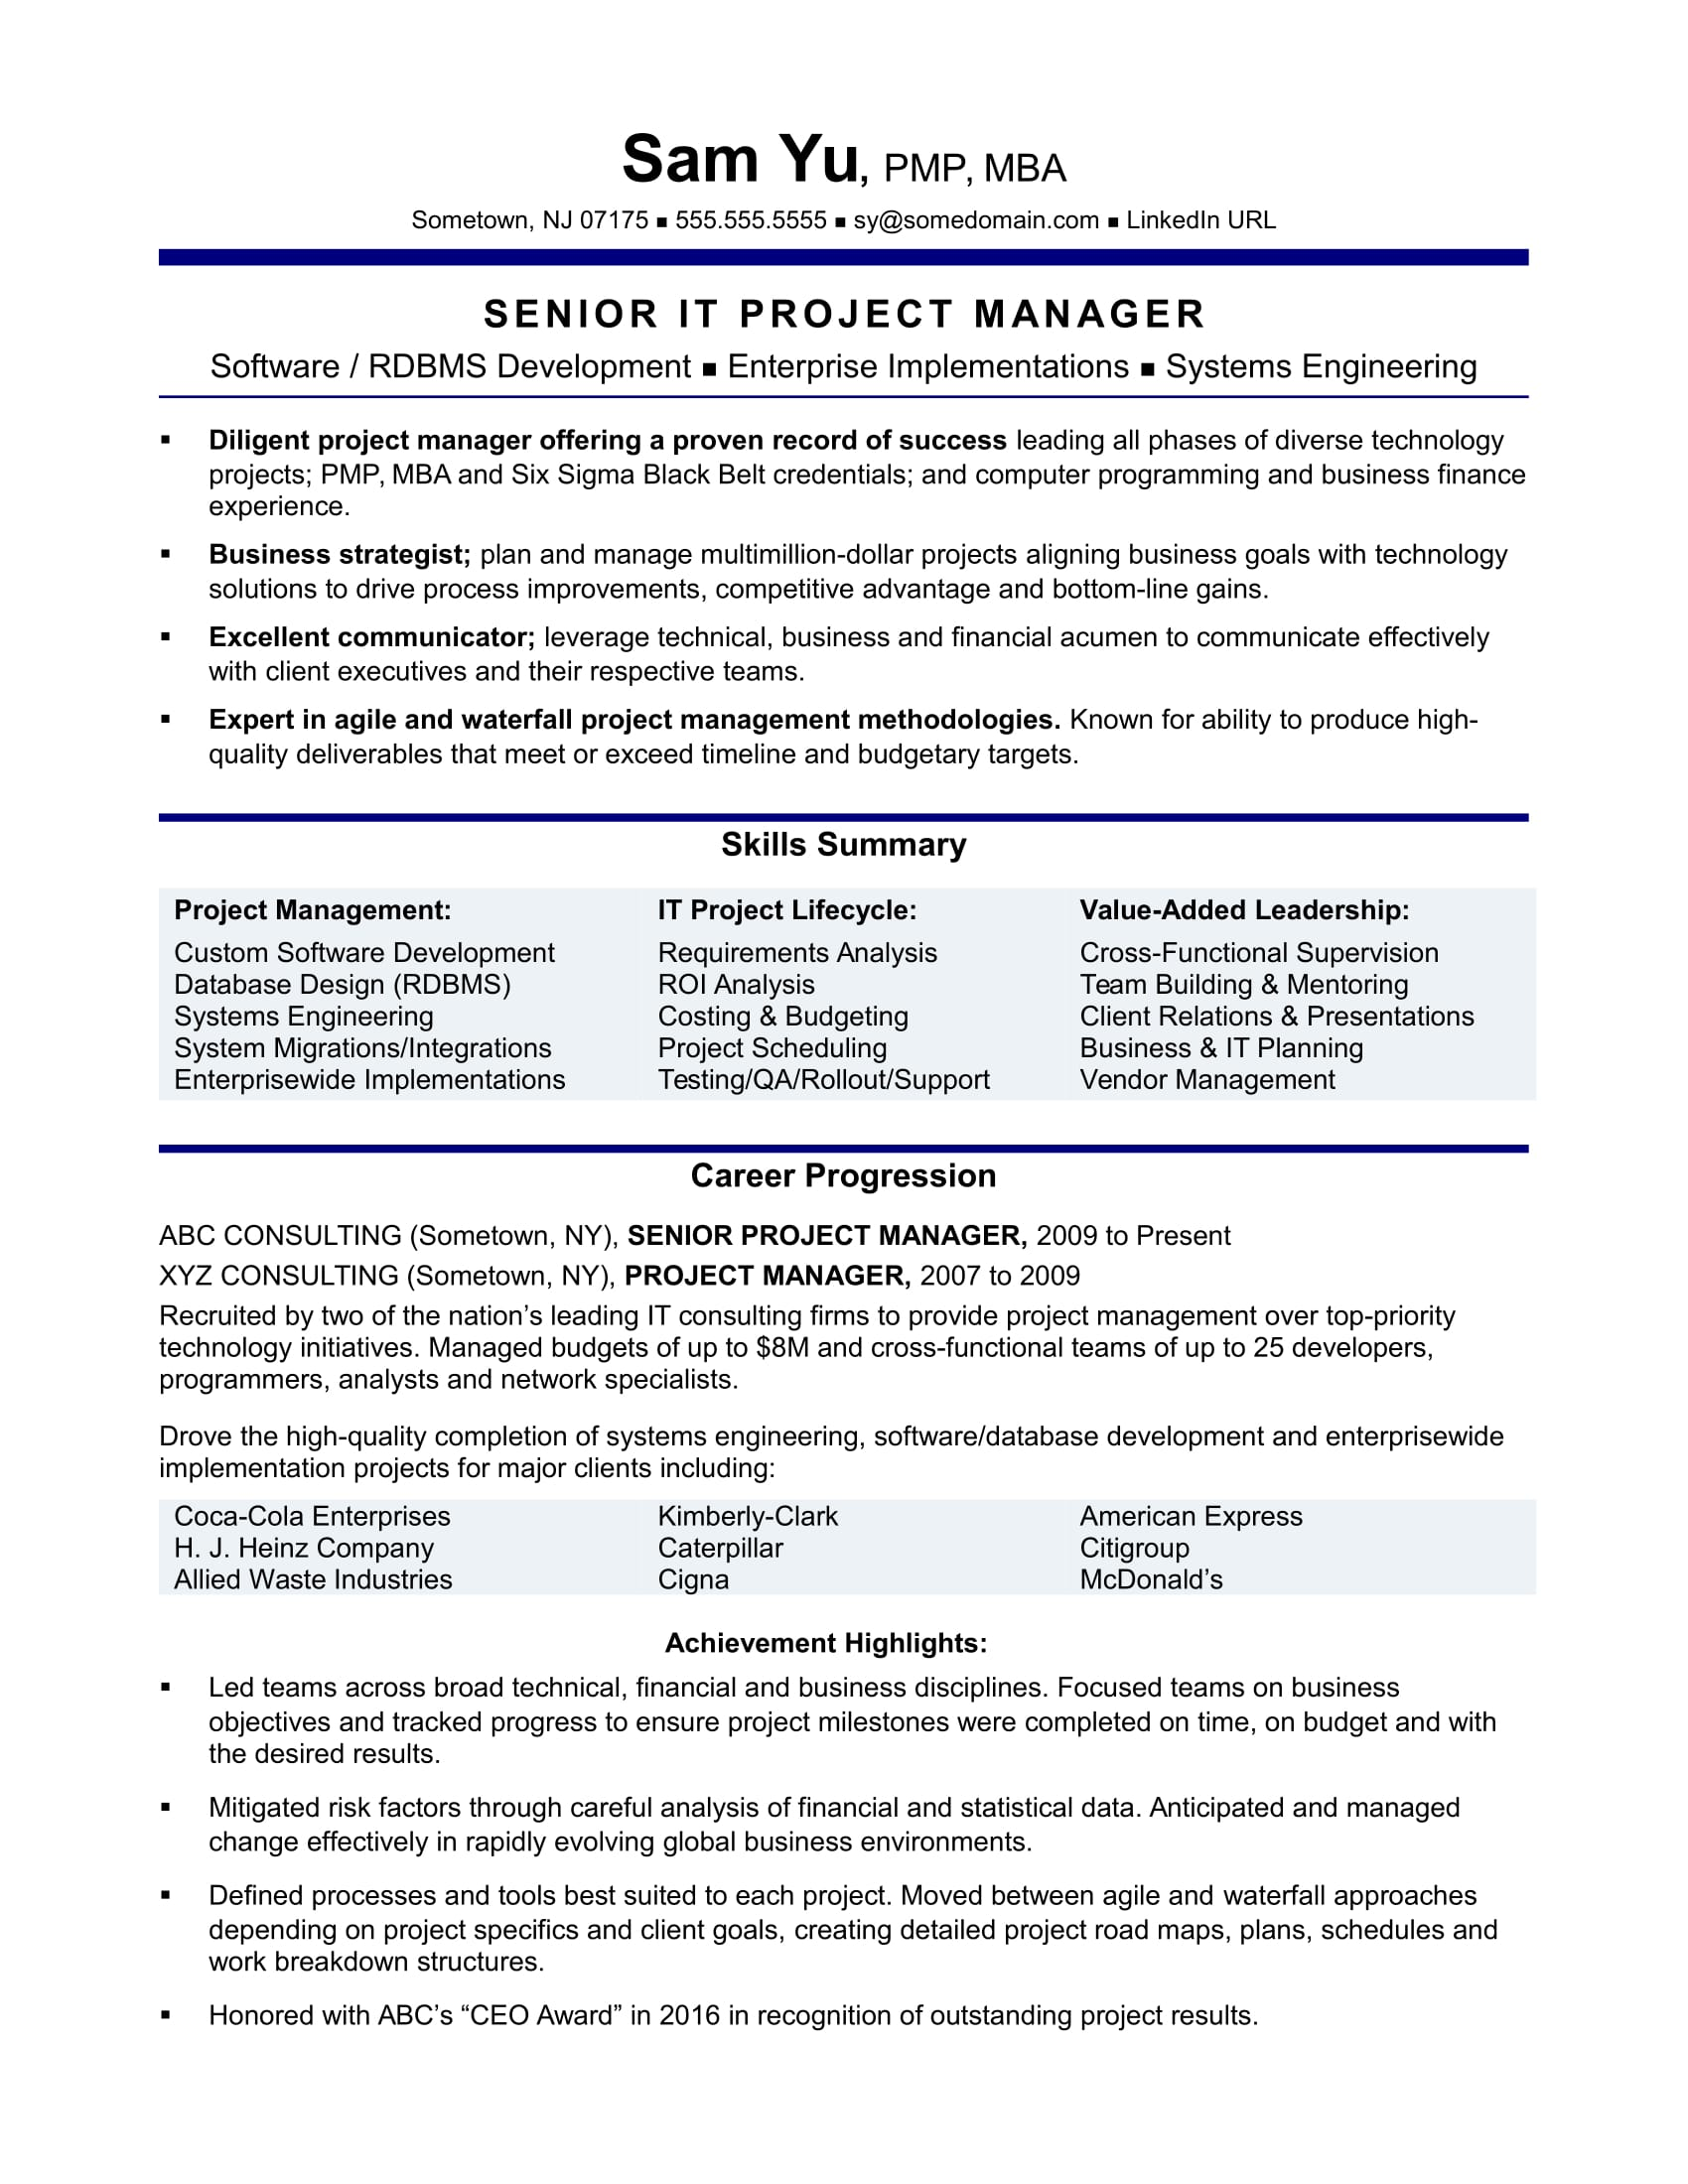 Superbe Experienced IT Project Manager Resume Sample